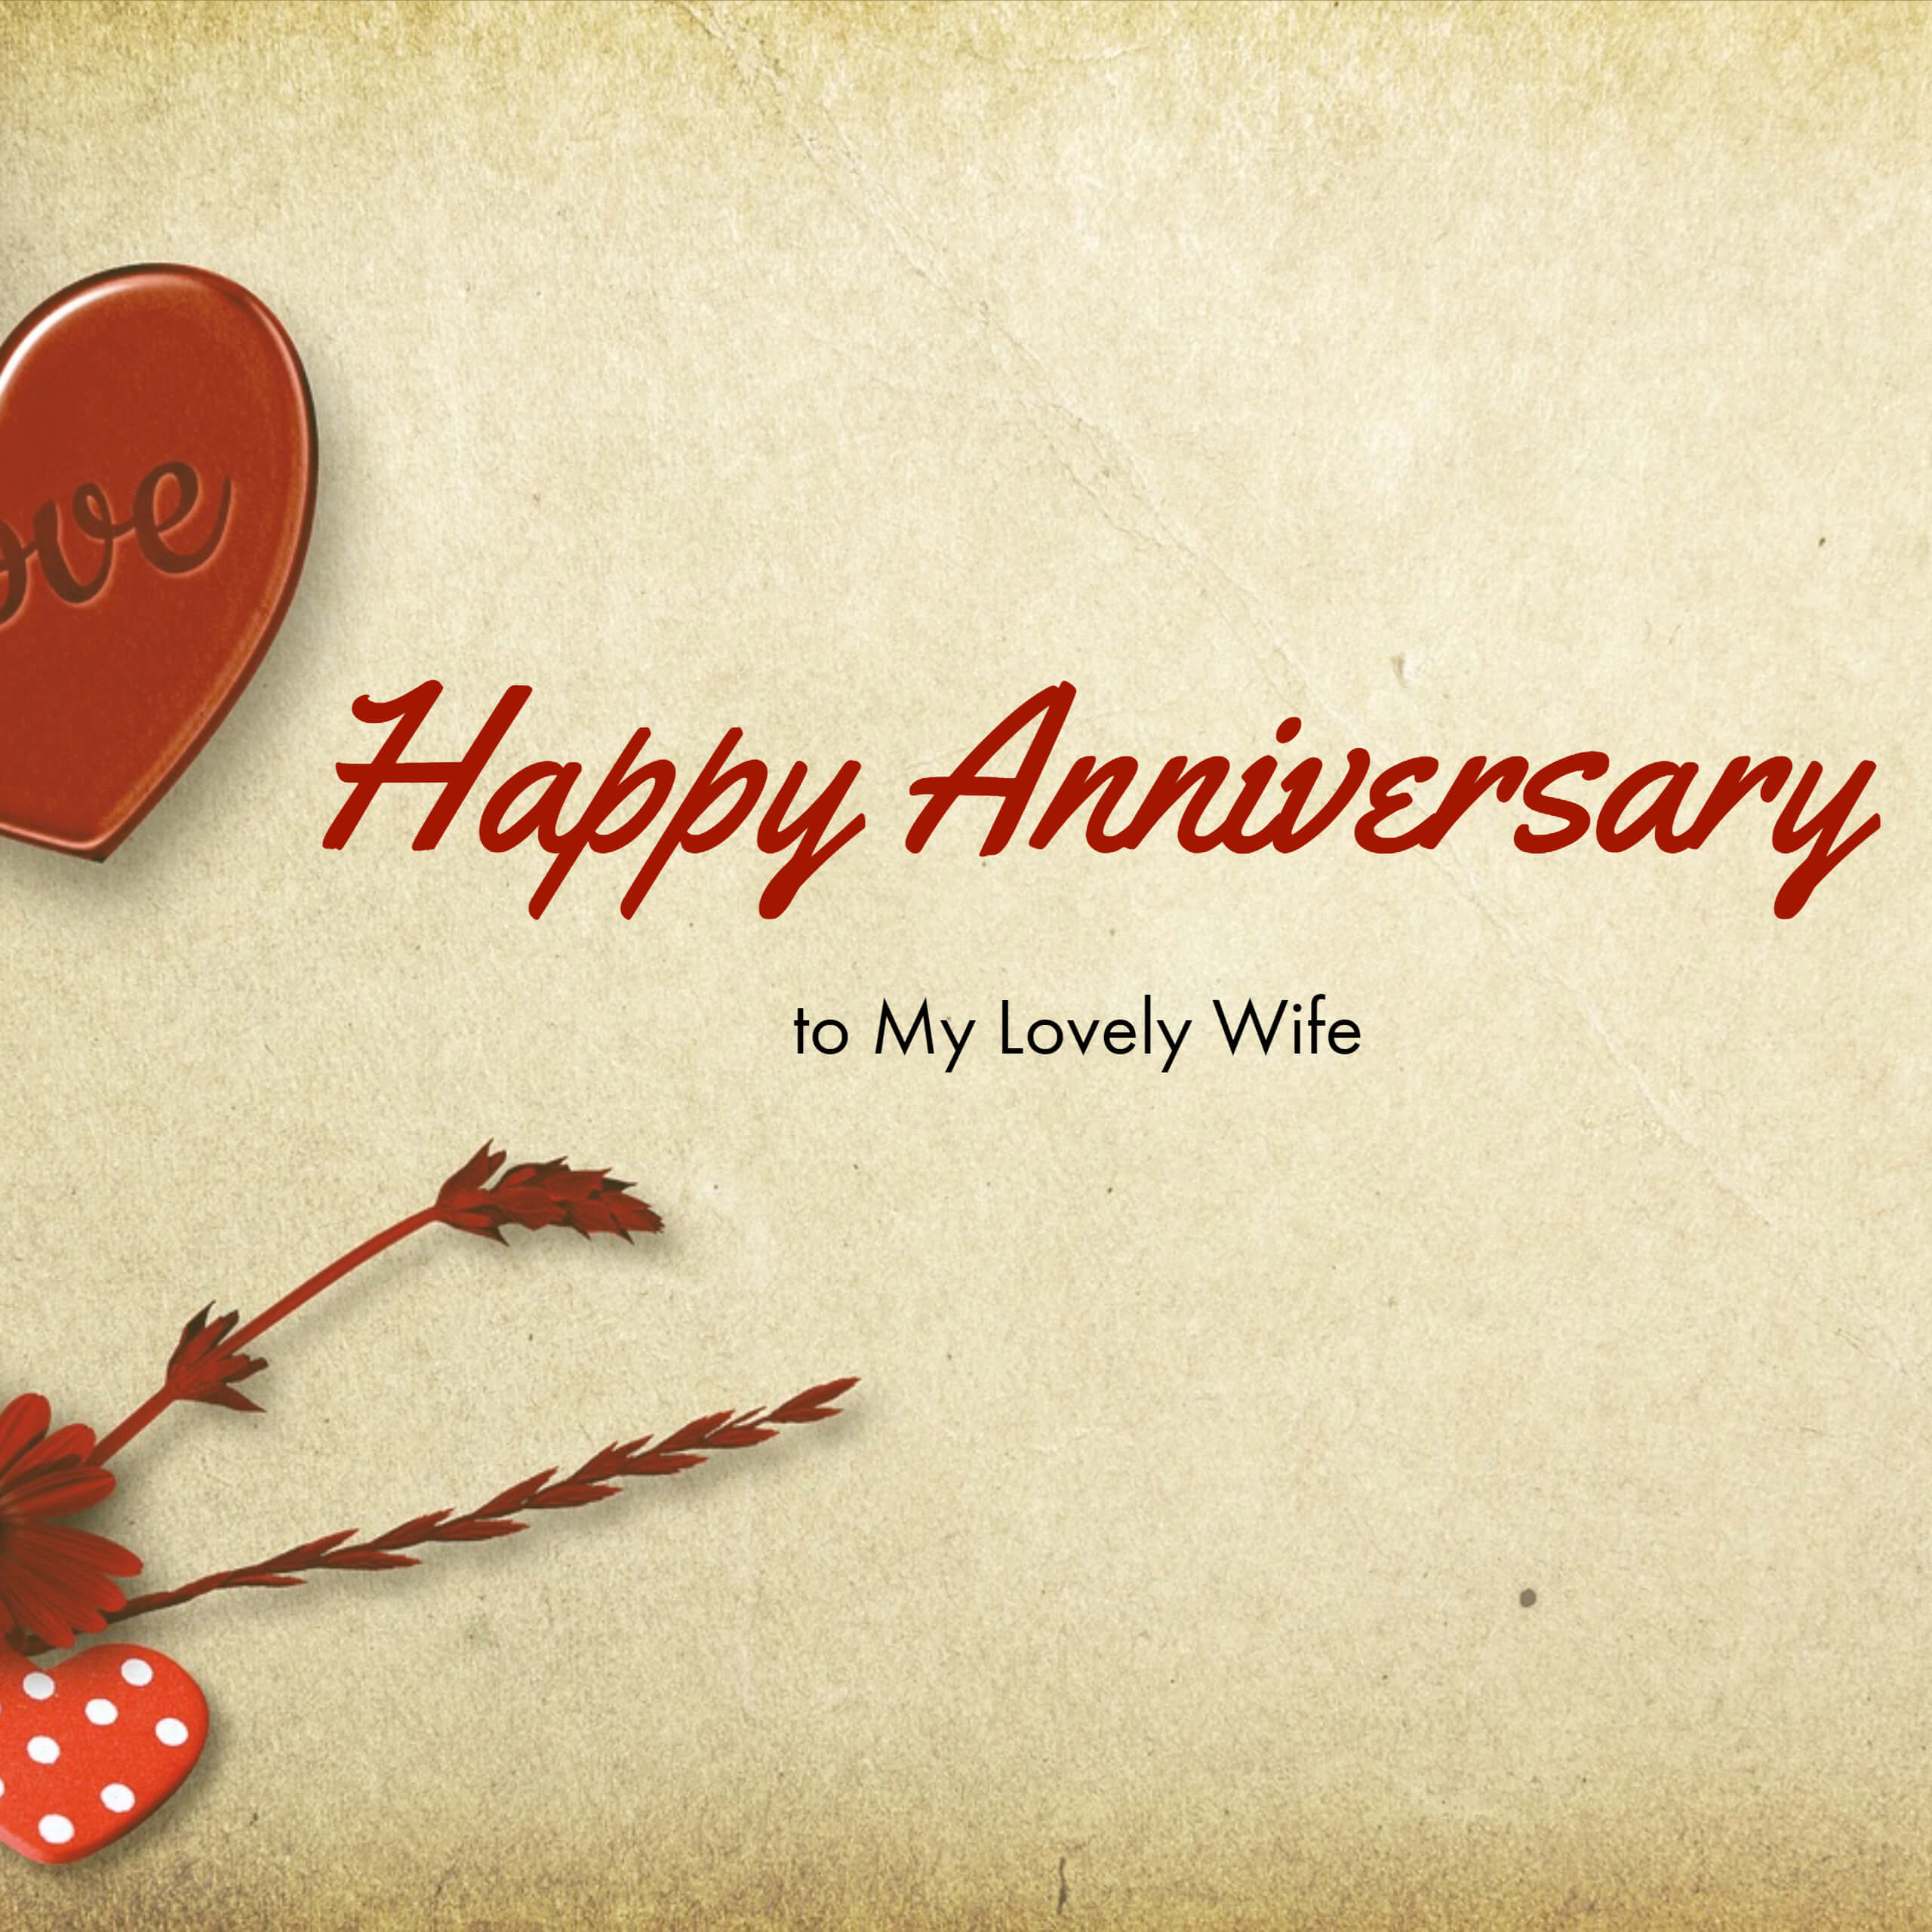 Happy Anniversary Wife Images